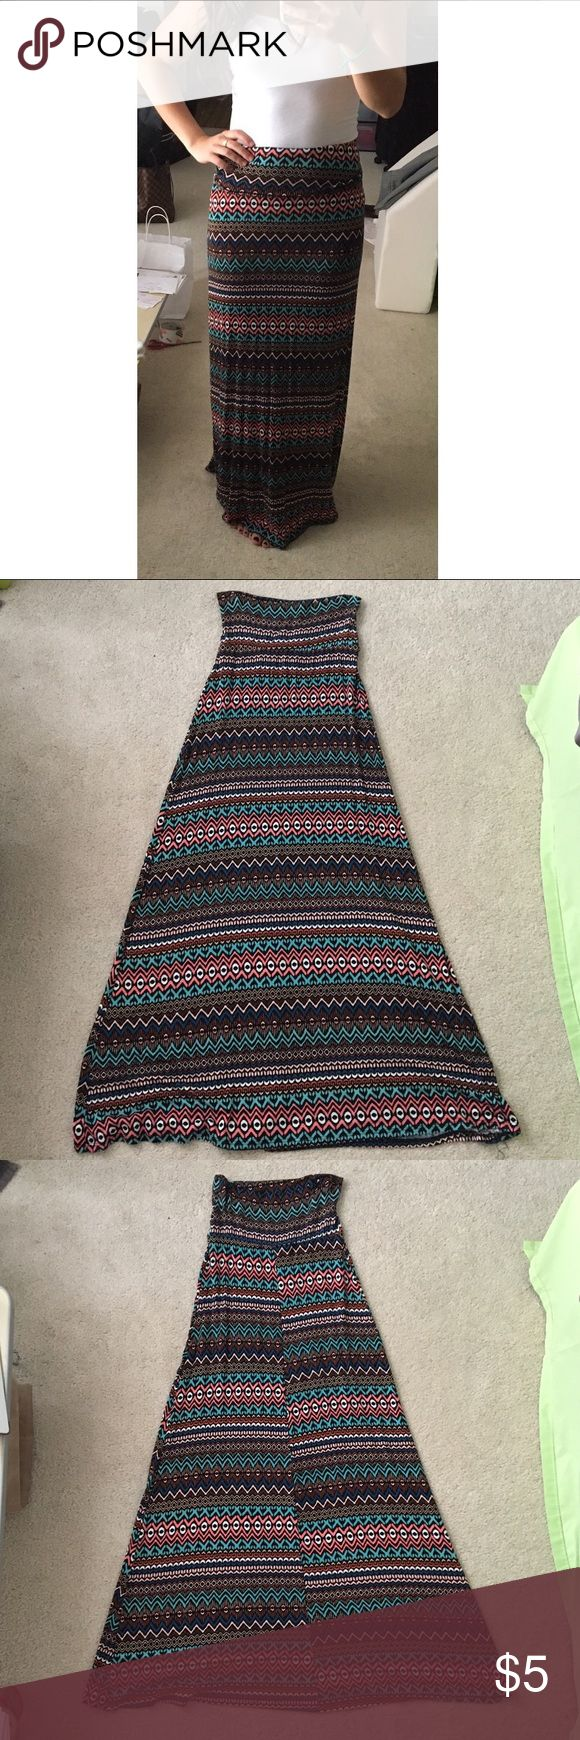 "Item 1: American Rag Maxi Skirt All items marked ""Item __"" are 3 for $12 IF you comment me the item numbers...I will create a new listing for you! 🤗 American Rag Maxi skirt, size XS. American Rag Skirts Maxi"